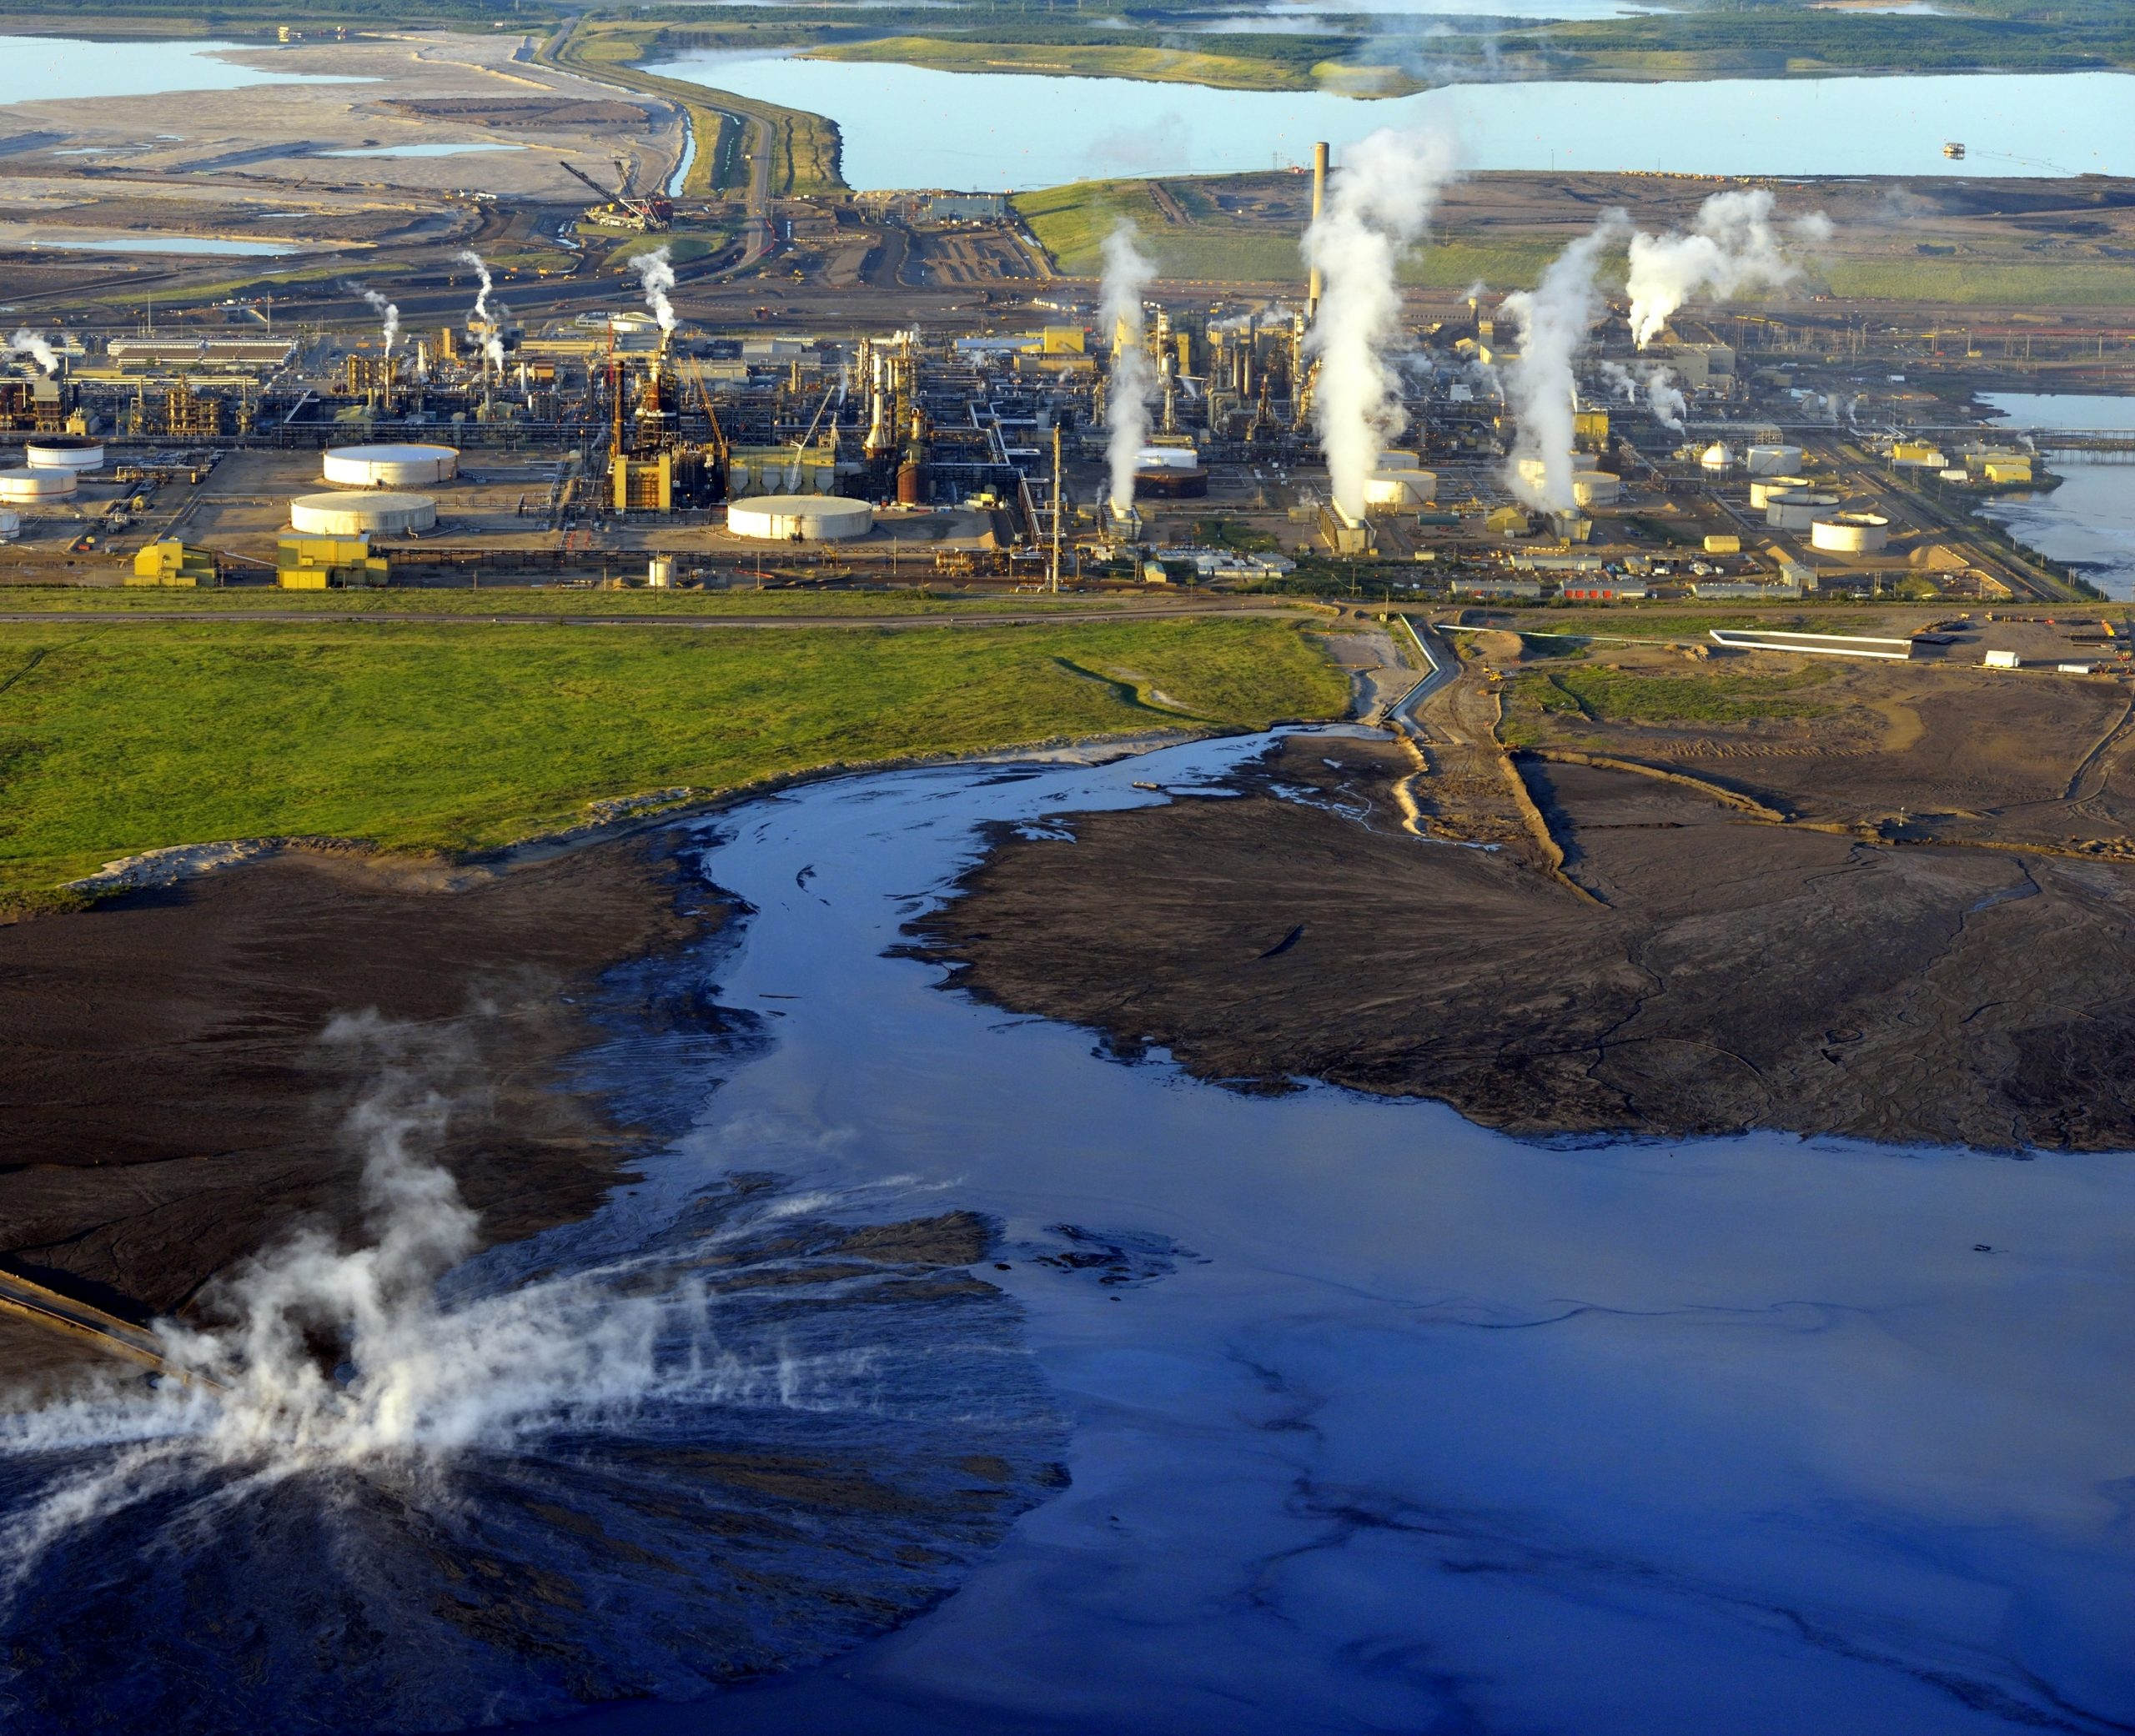 Steam at inflow to tailings pond at Syncrude's Mildred Lake bitumen refinery Oil sands north of Fort McMurray, Alberta